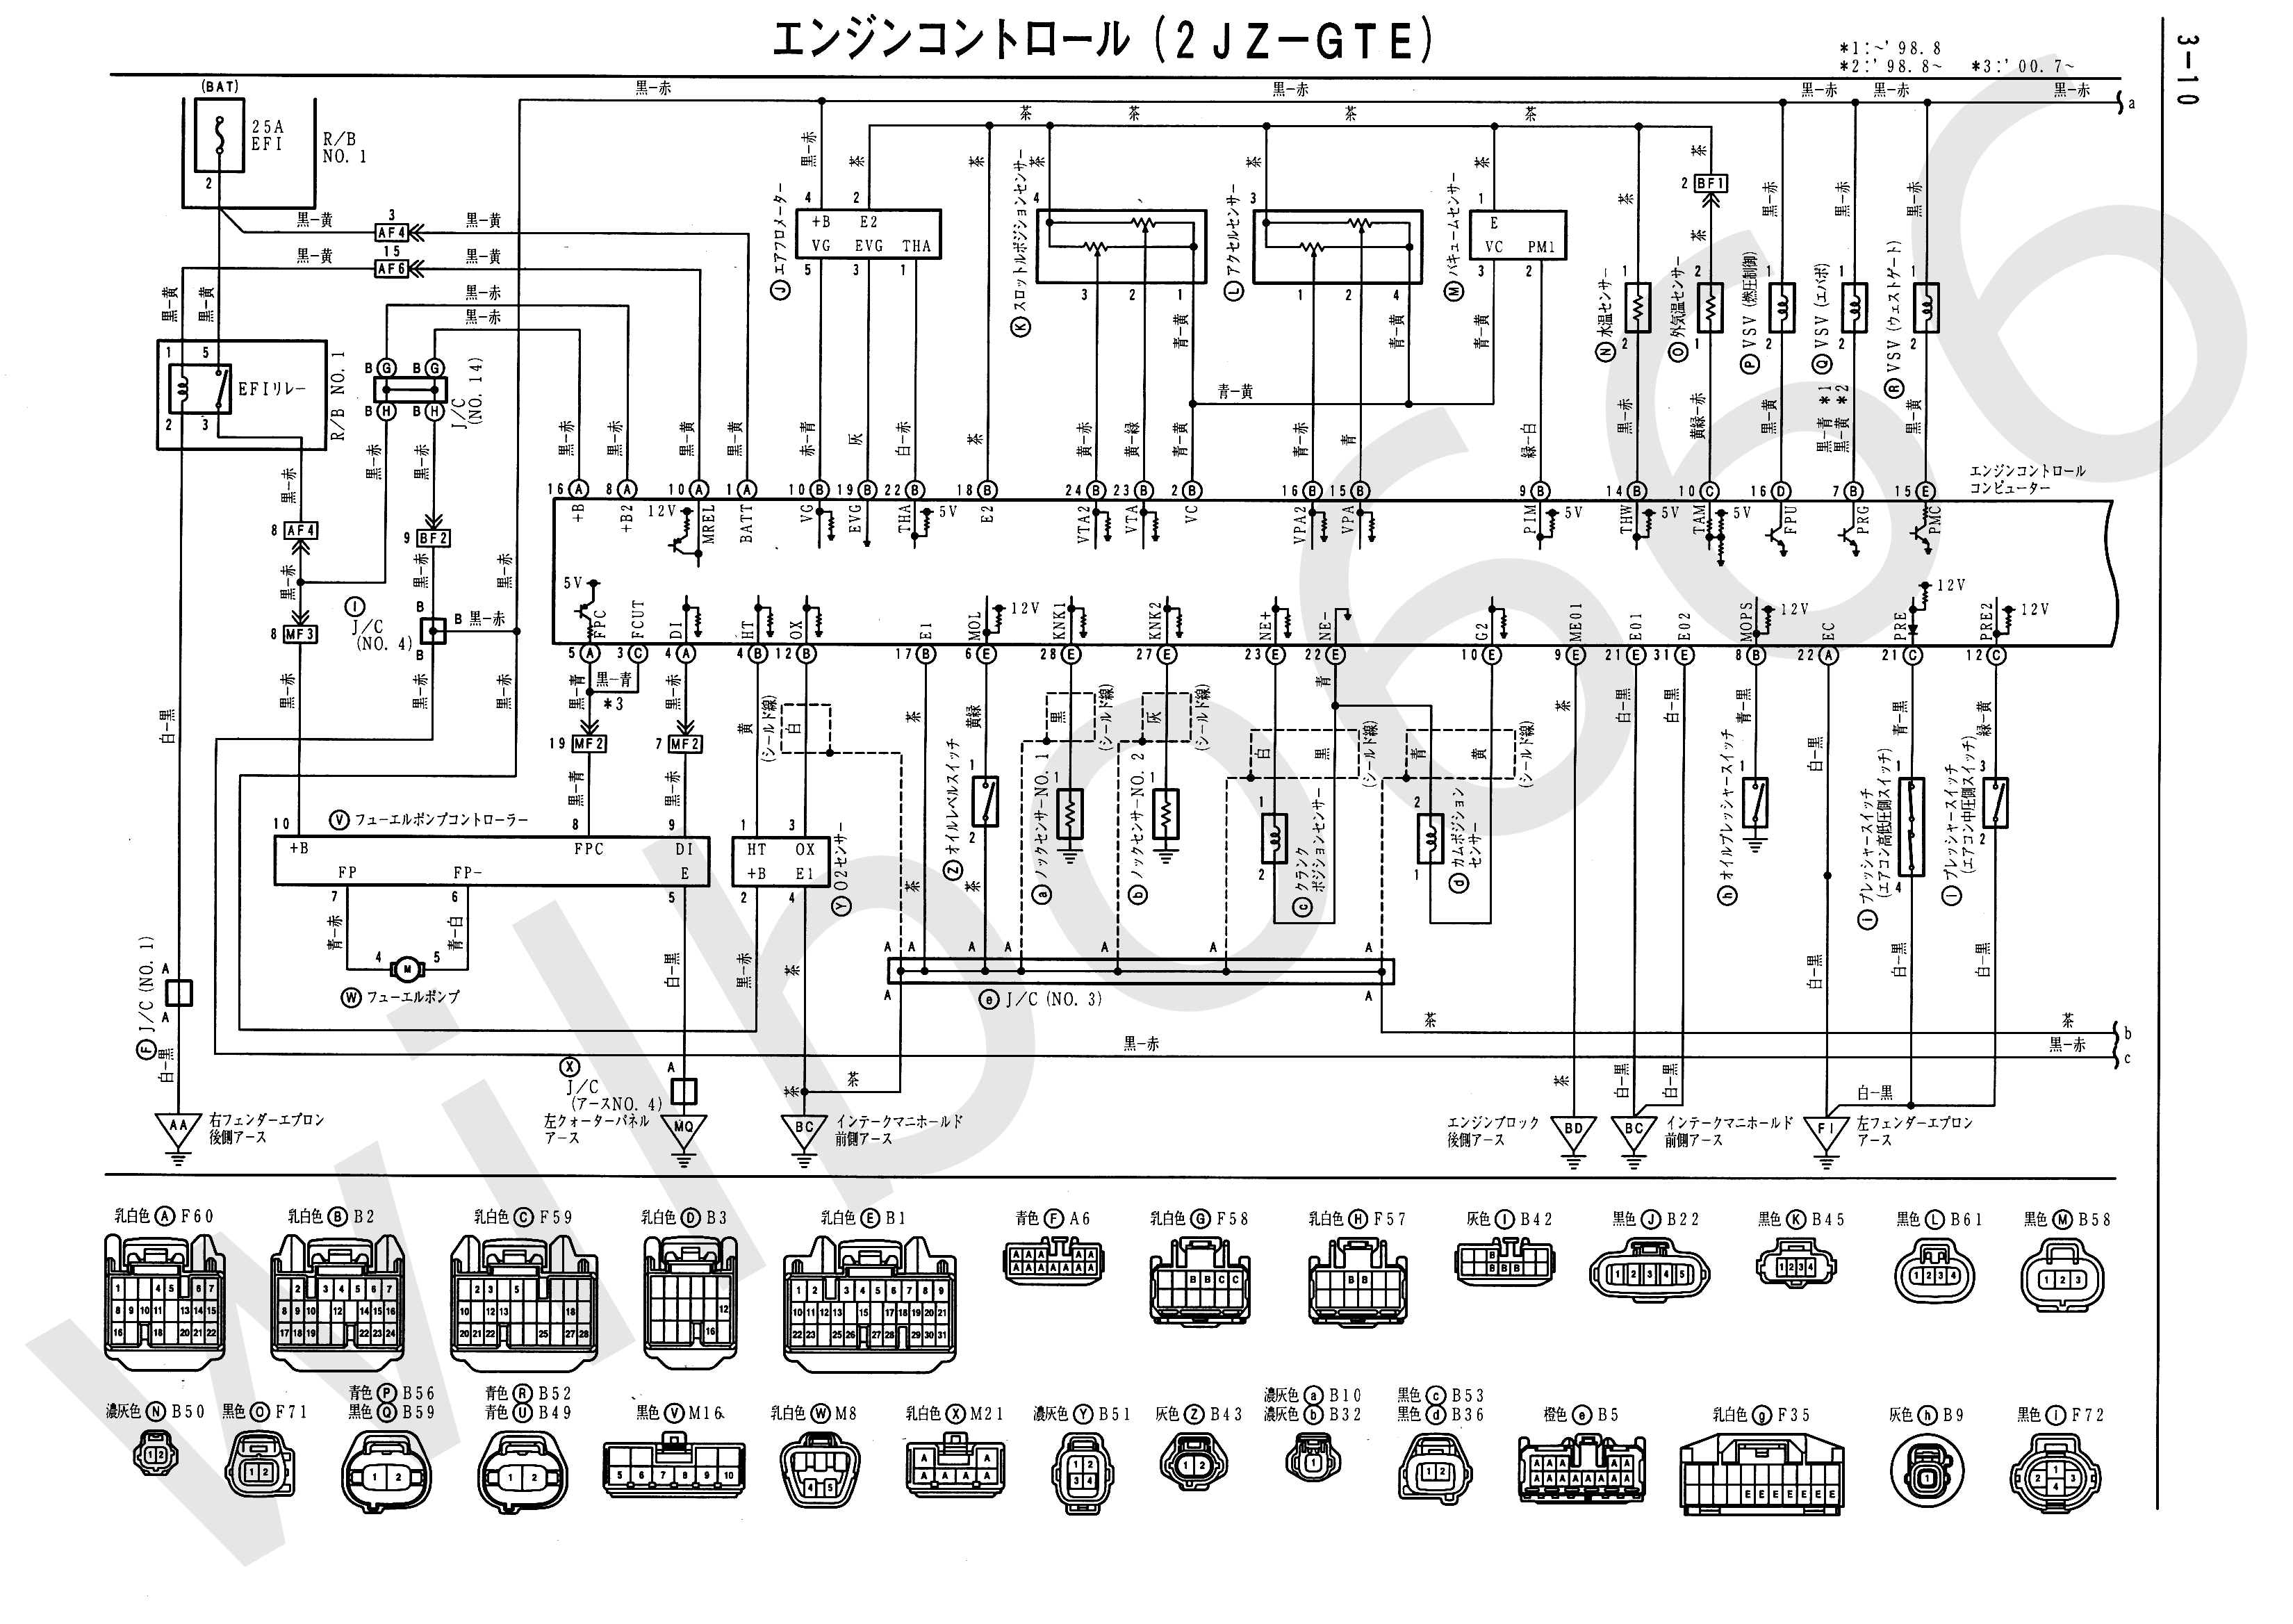 JZS161 Electrical Wiring Diagram 6748505 3 10 wilbo666 2jz gte vvti jzs161 aristo engine wiring 2jzgte wiring diagram at mifinder.co